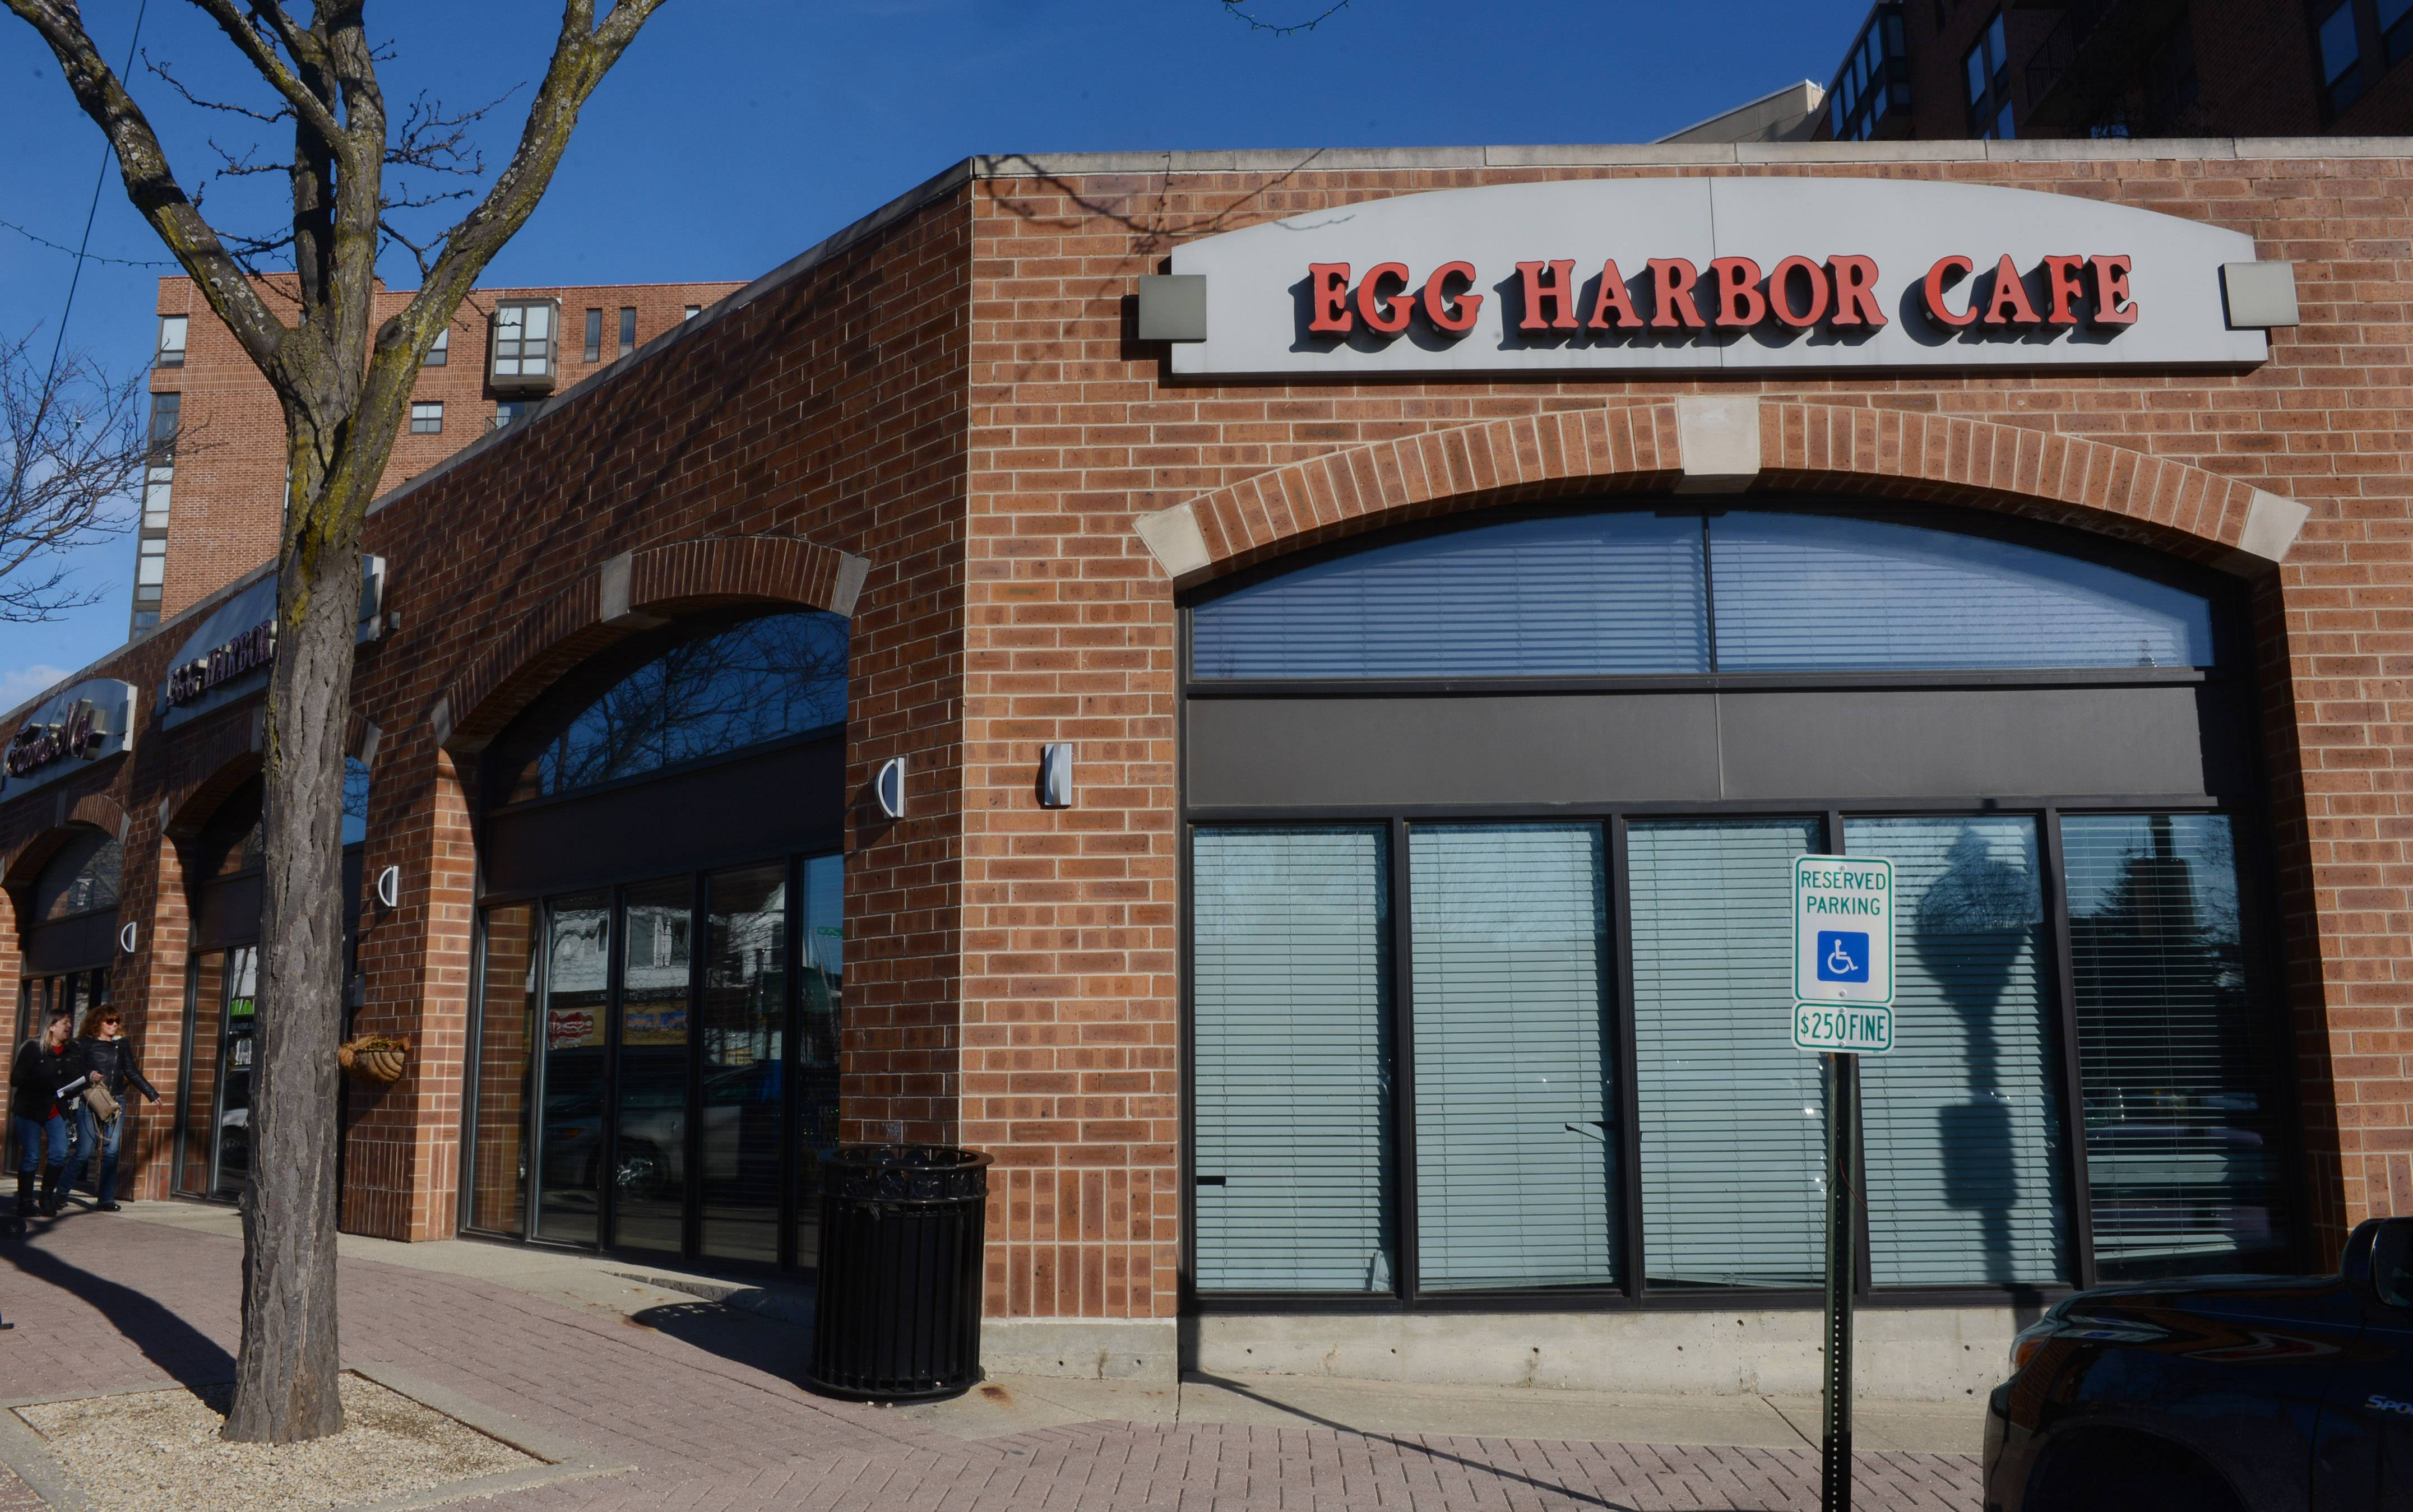 The Egg Harbor Cafe at 110 E. Wing St. in Arlington Heights will expand and undergo a renovation this spring. The first phase of the work will require the restaurant to close from Feb. 22 to March 4.